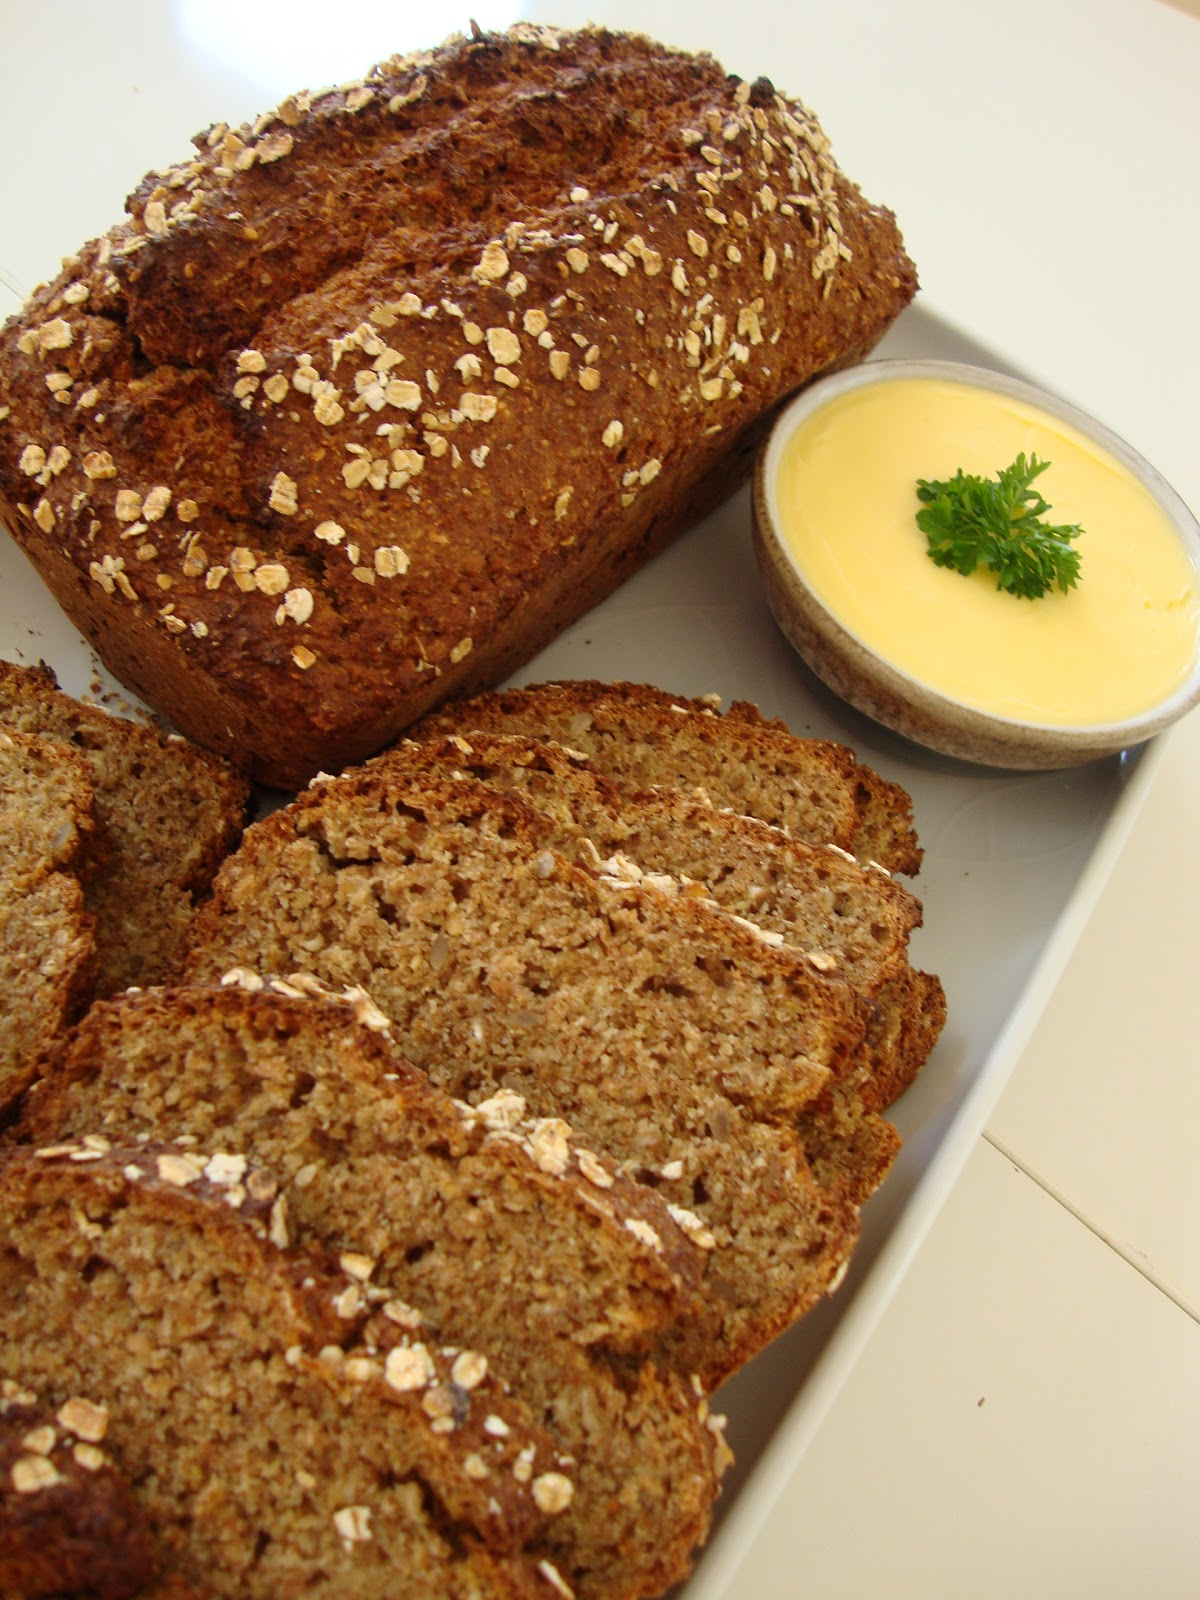 Janes food adventures: Brown soda bread